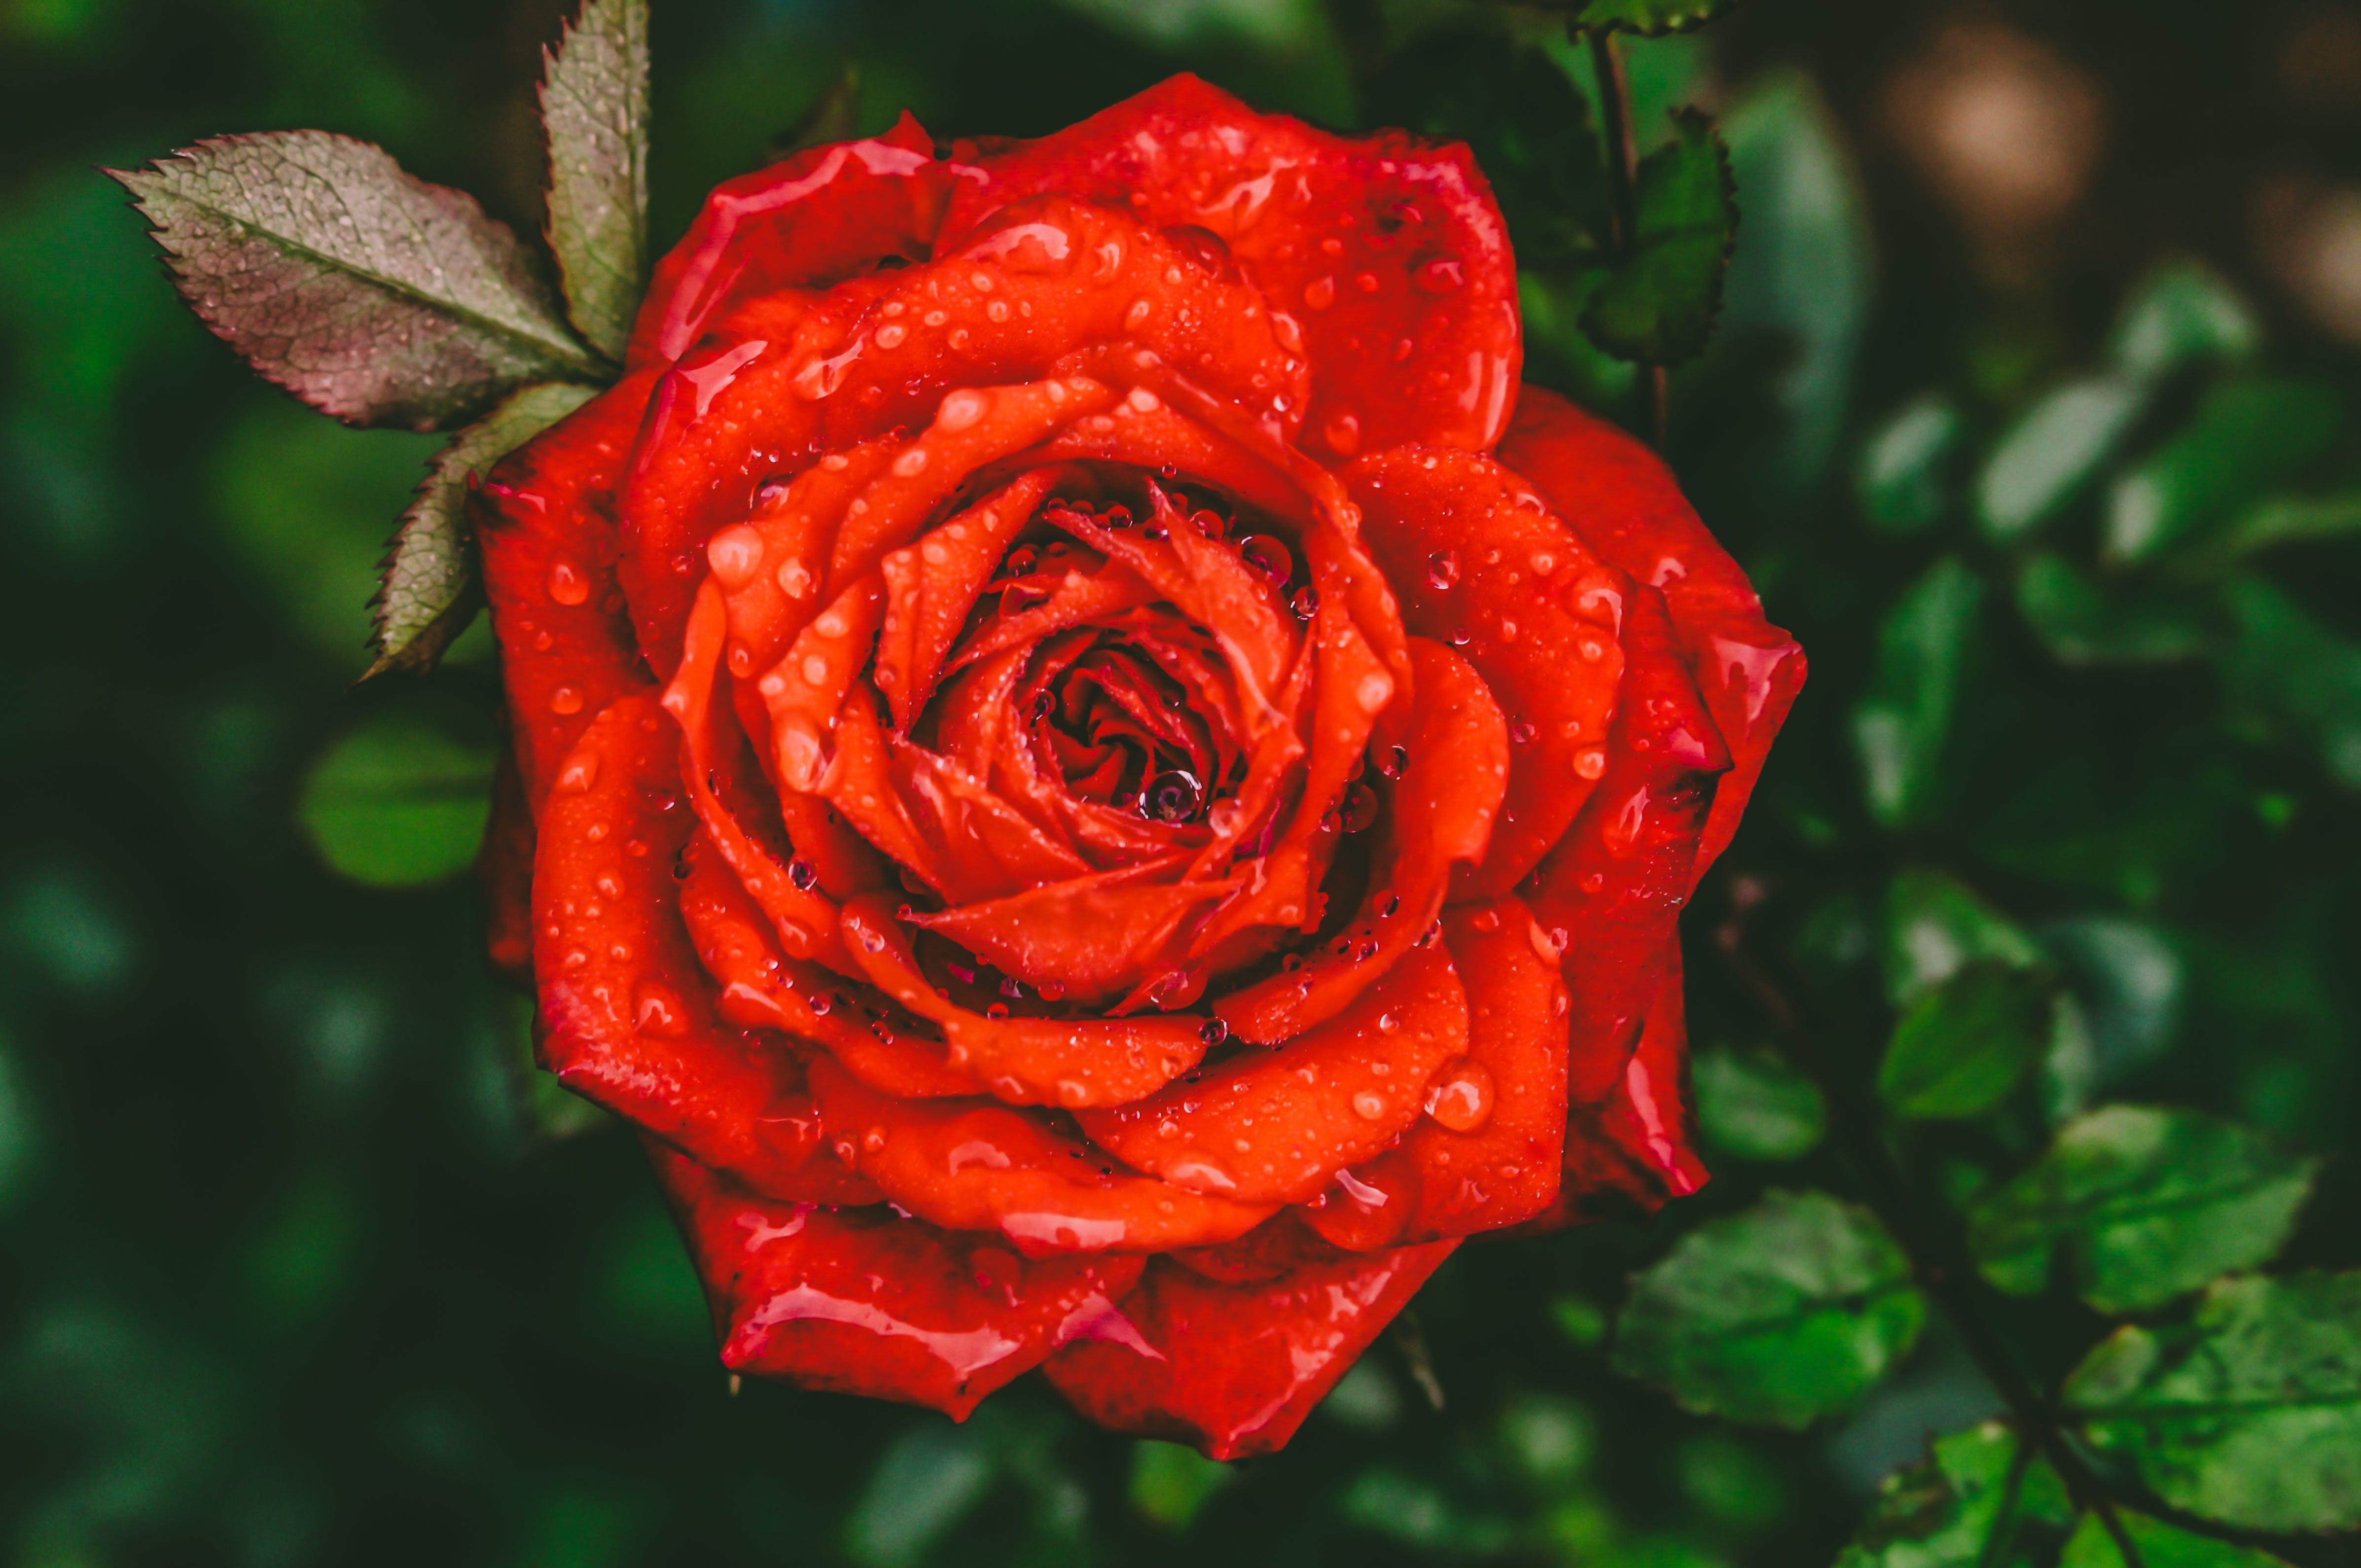 Close-Up Photography of Red Rose Flower With Water Drops